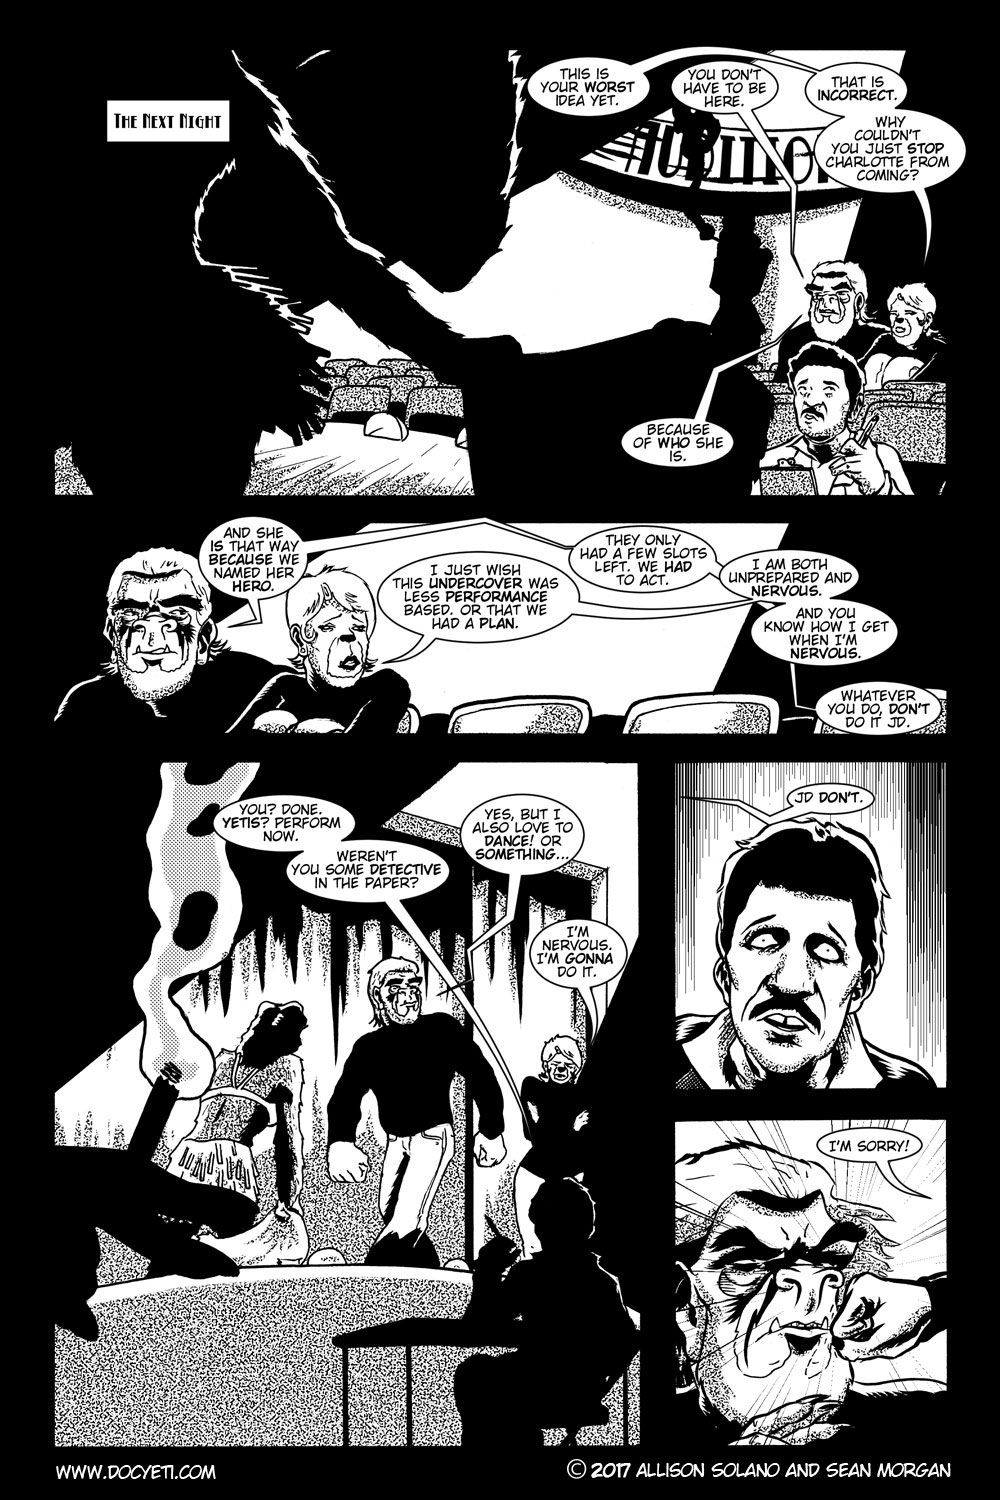 This Yeti for Hire! or the Yeti with the Lace Kerchief! Issue 2 pg.16